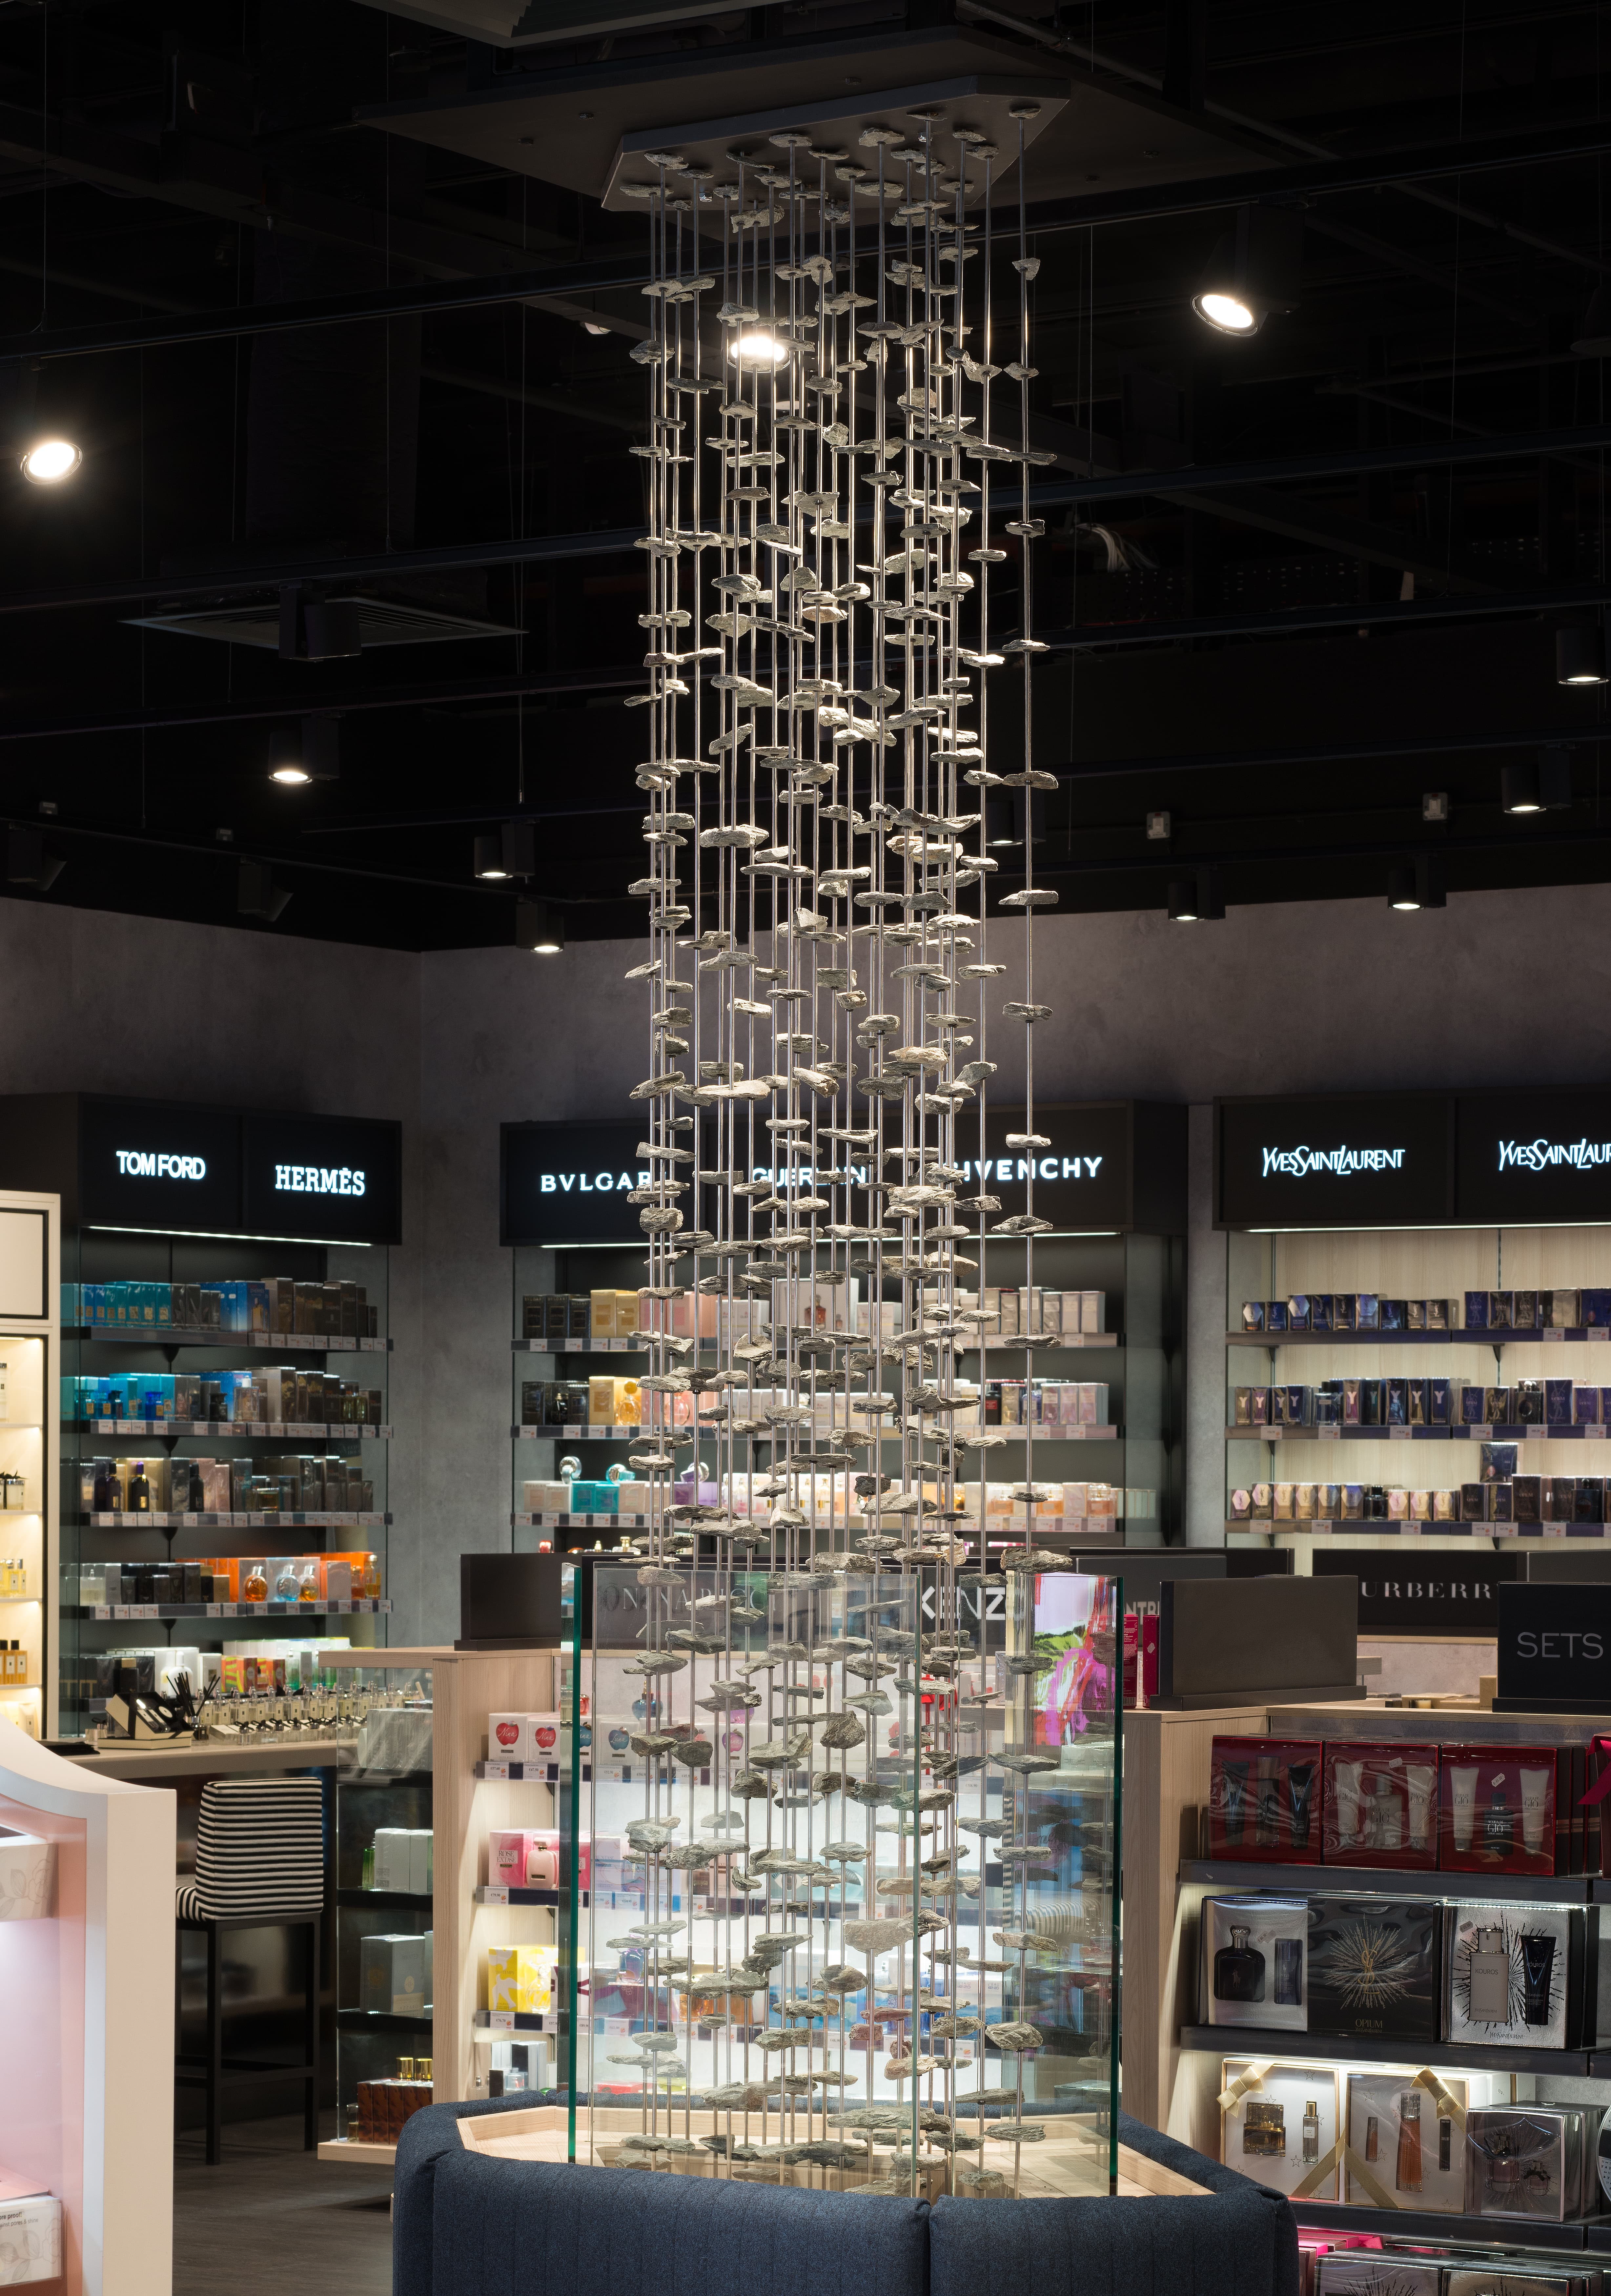 Shannon Airport Duty Free Store Design